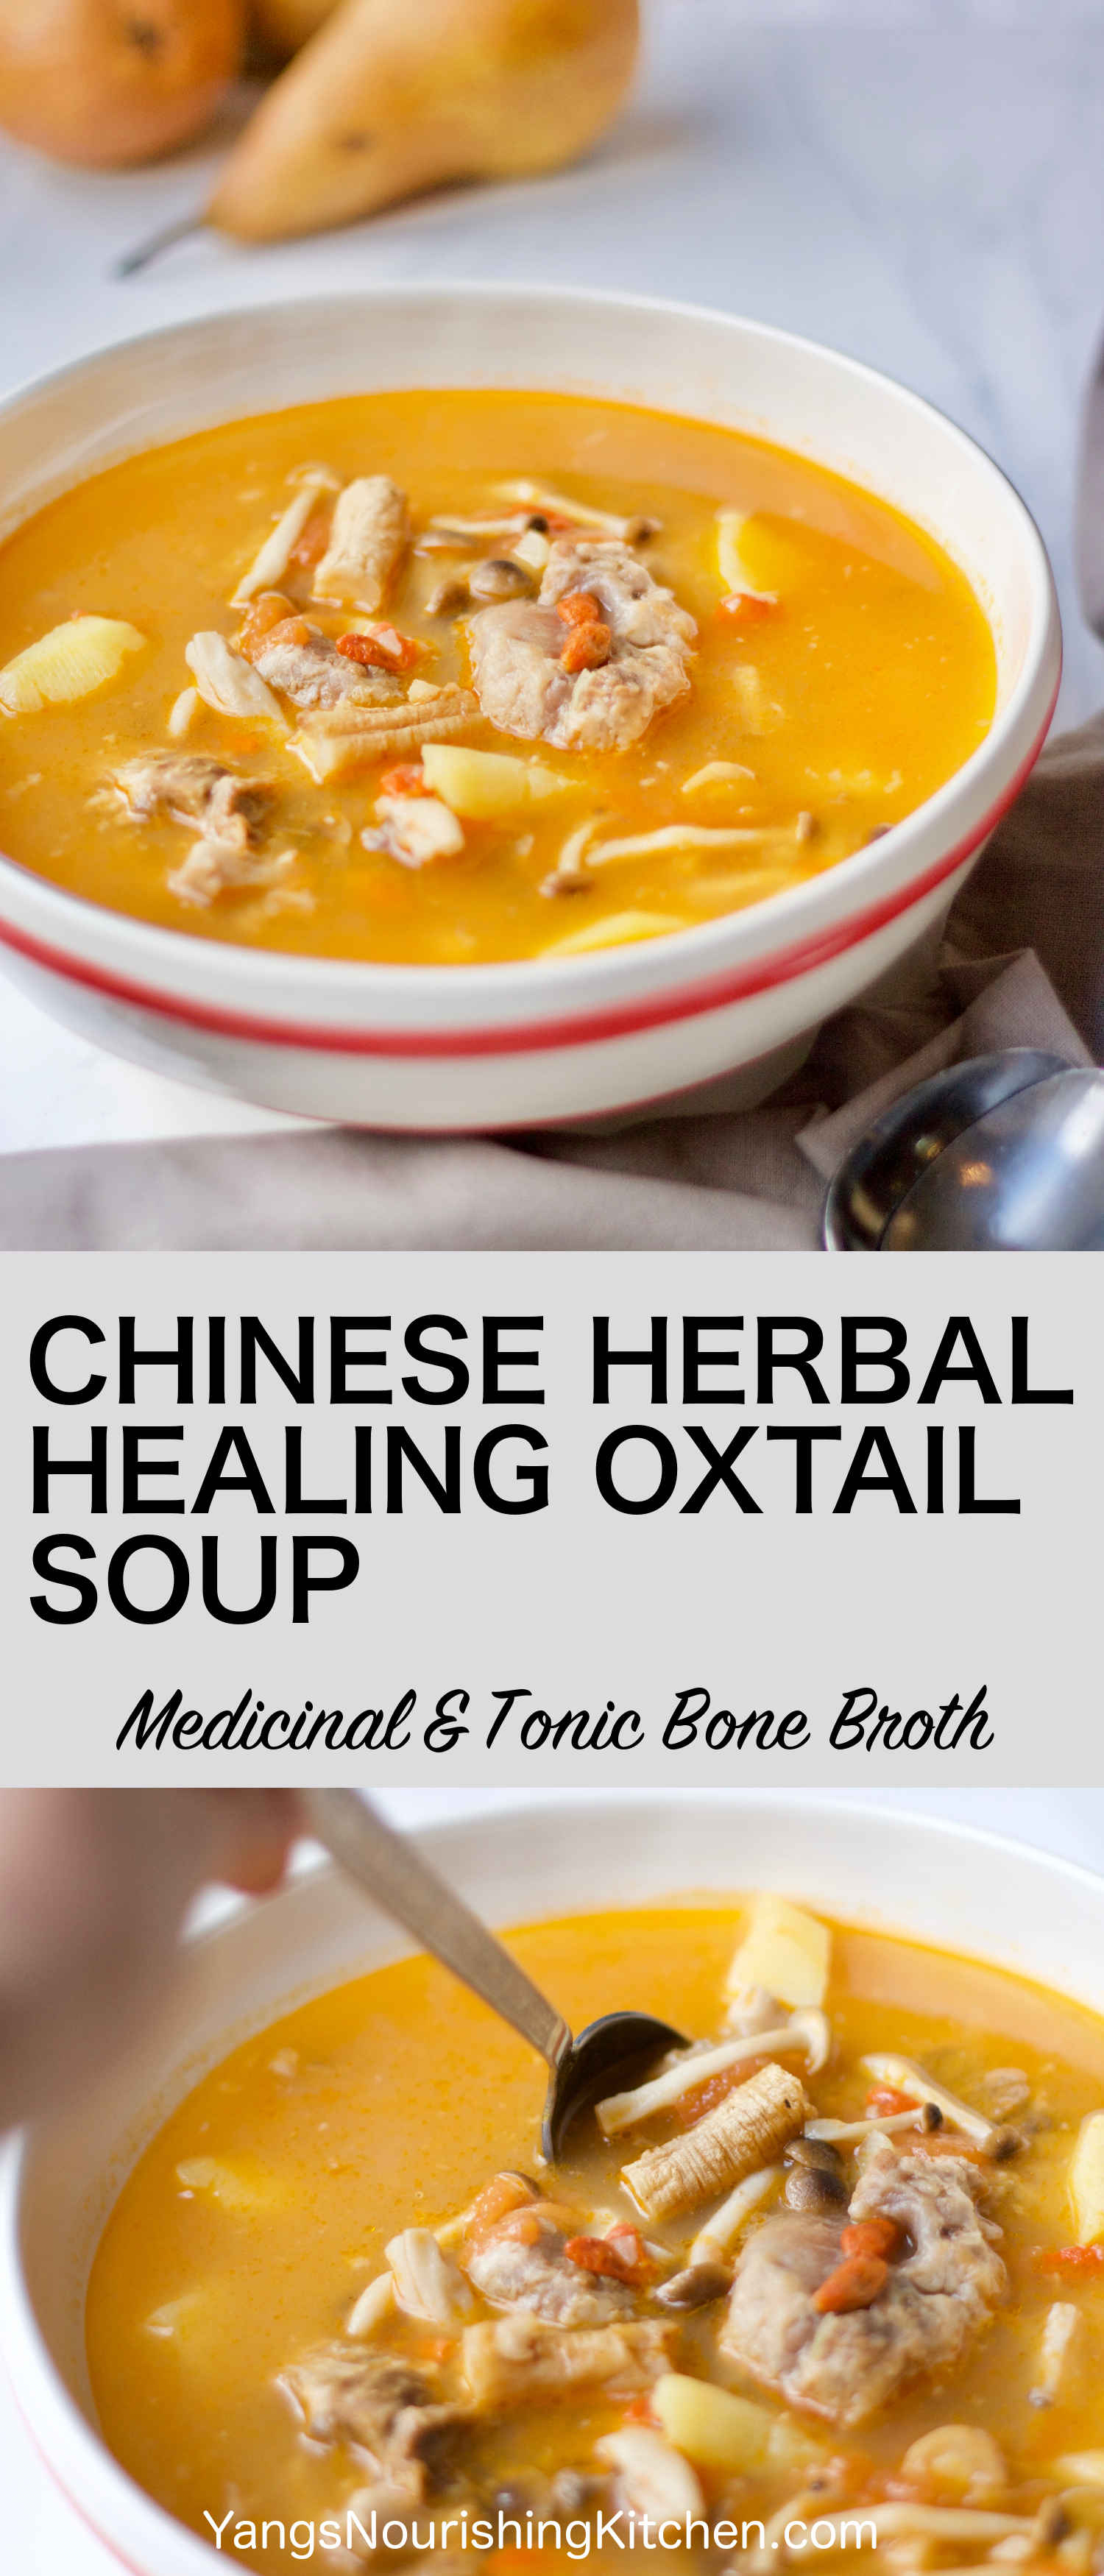 #bonebroth #tcm #oxtail This Chinese herbal healing oxtail soup is a classic nourishing recipe based on Traditional Chinese medicine. The oxtail soup provides the full range of health benefits of the bone broth. Coupled with the use of goji berries and codonopsis root, this Chinese herbal healing oxtail soup focuses on toning and strengthening Qi. Whether you are in a process of healing or just looking for a cozy and nourishing meal, it's a perfect recipe for the whole family in cold weather.